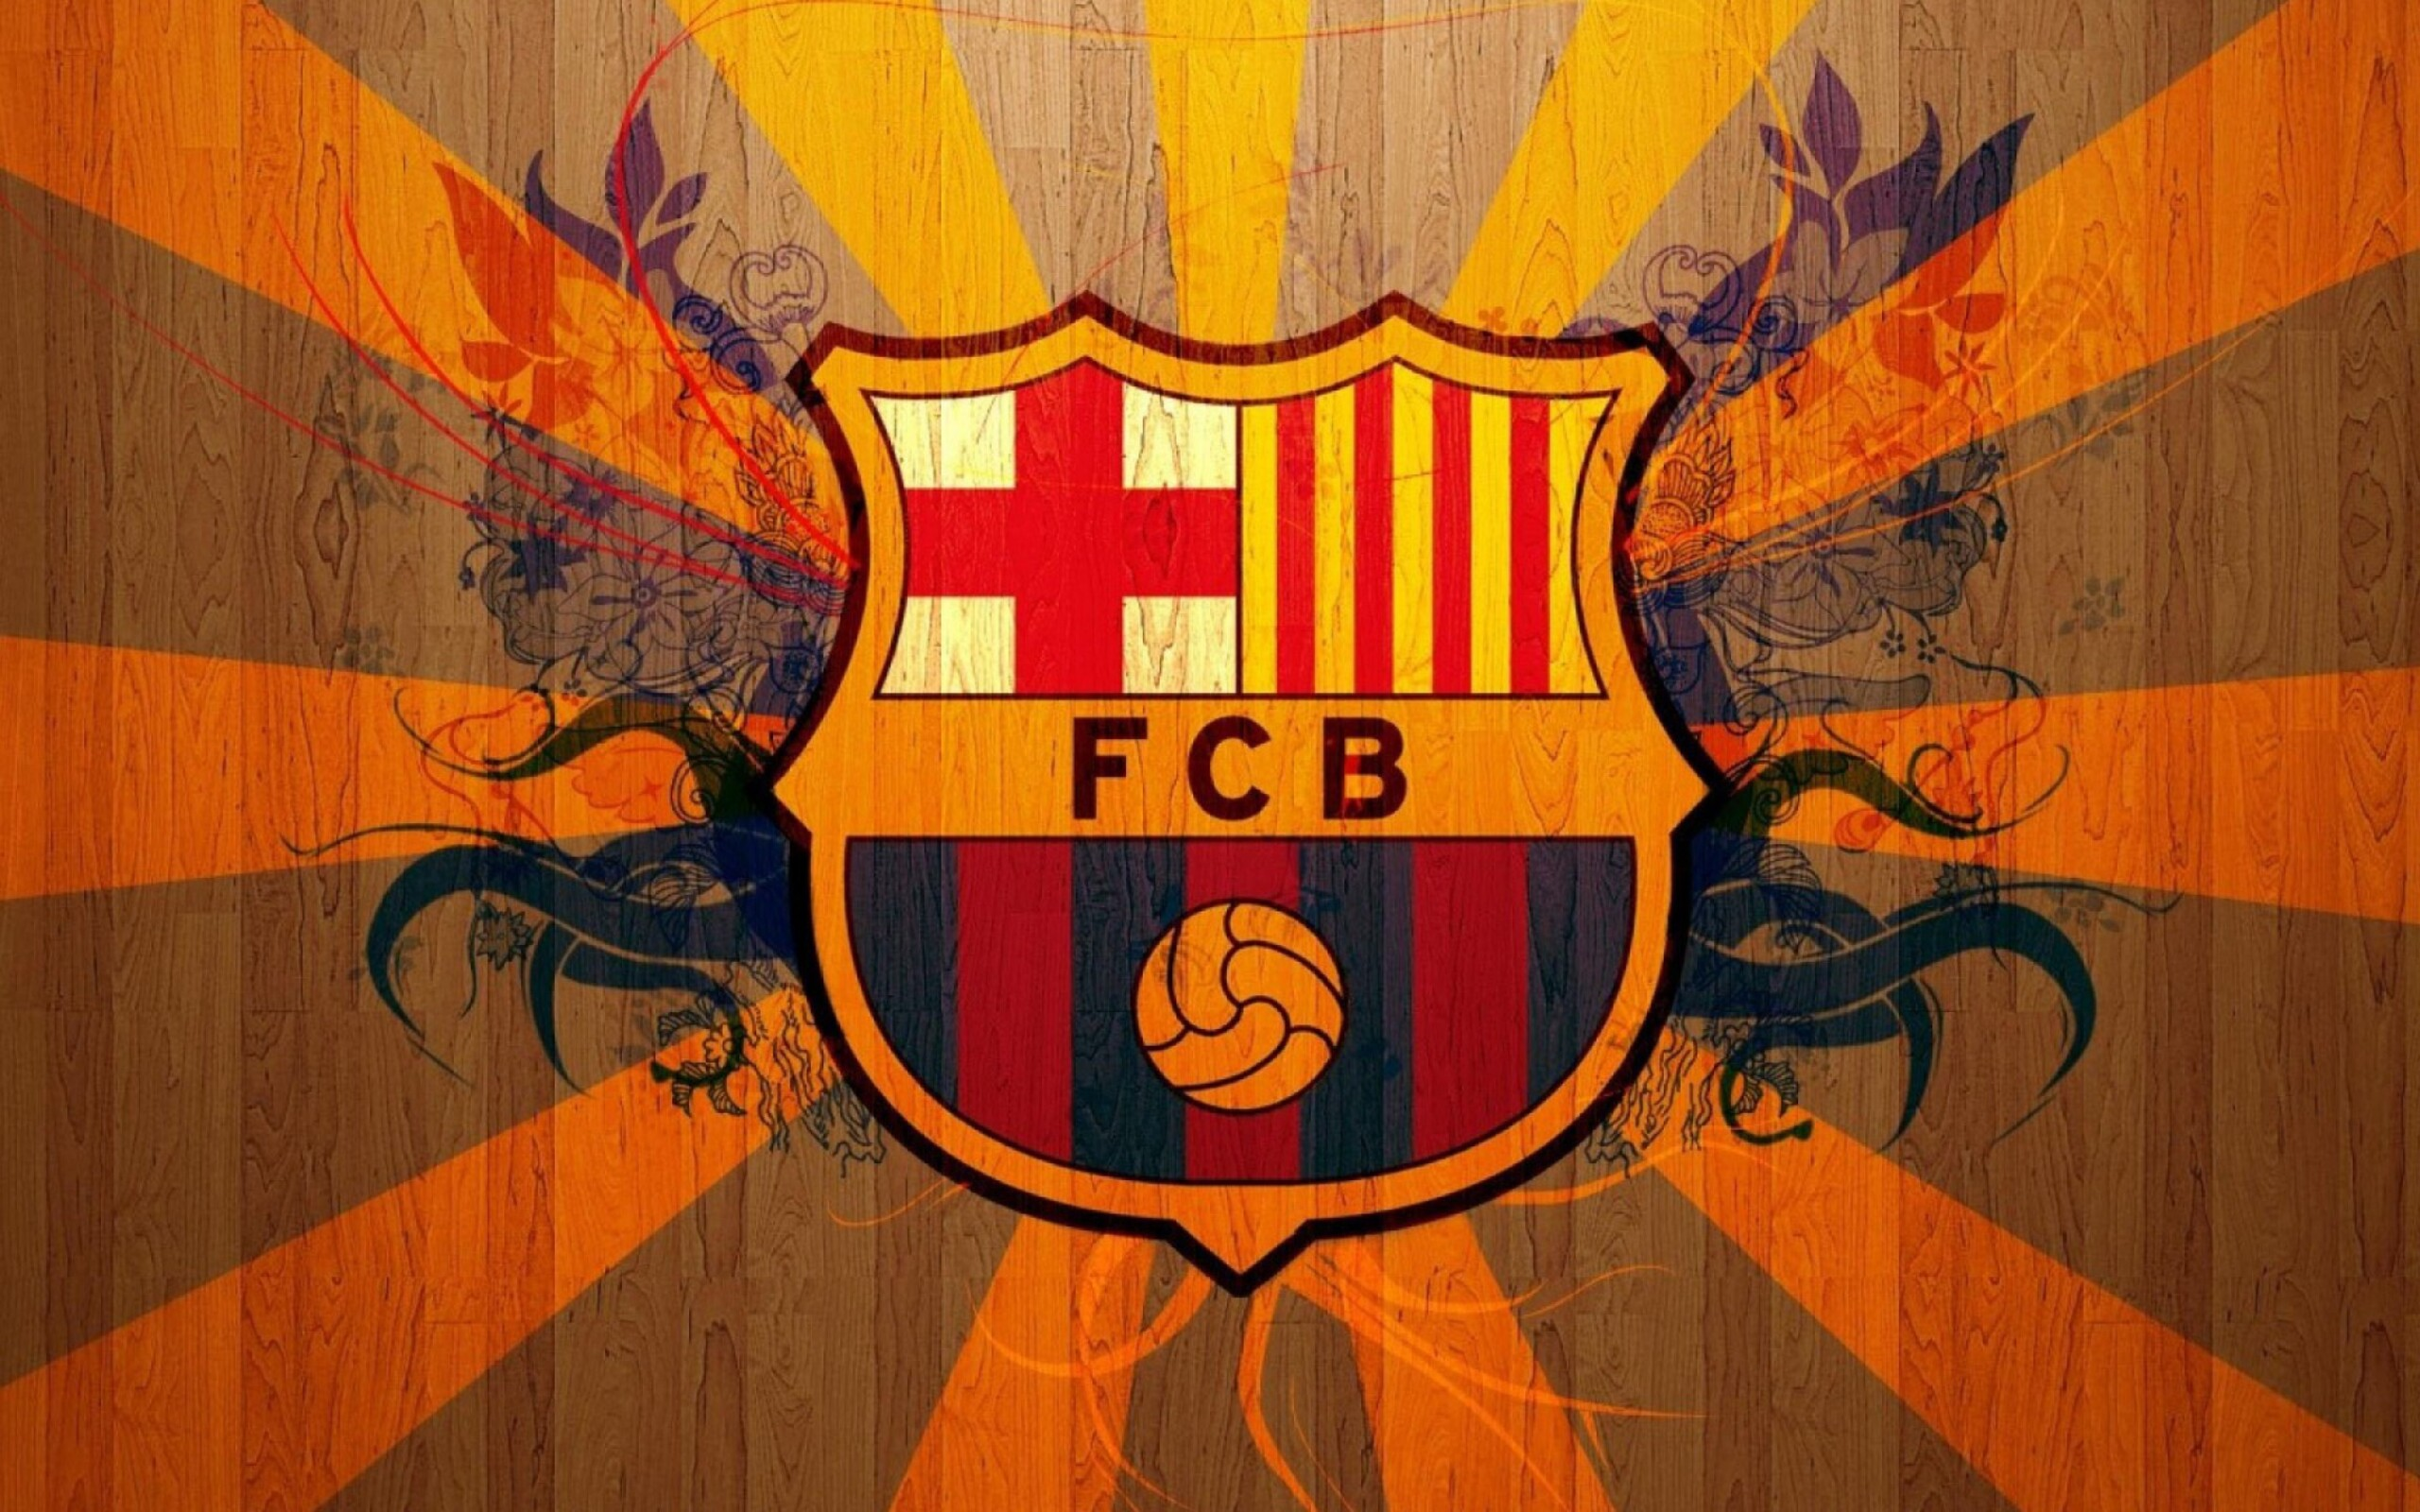 2560x1600 Fc Barcelona Logo 2560x1600 Resolution Hd 4k Wallpapers Images Backgrounds Photos And Pictures